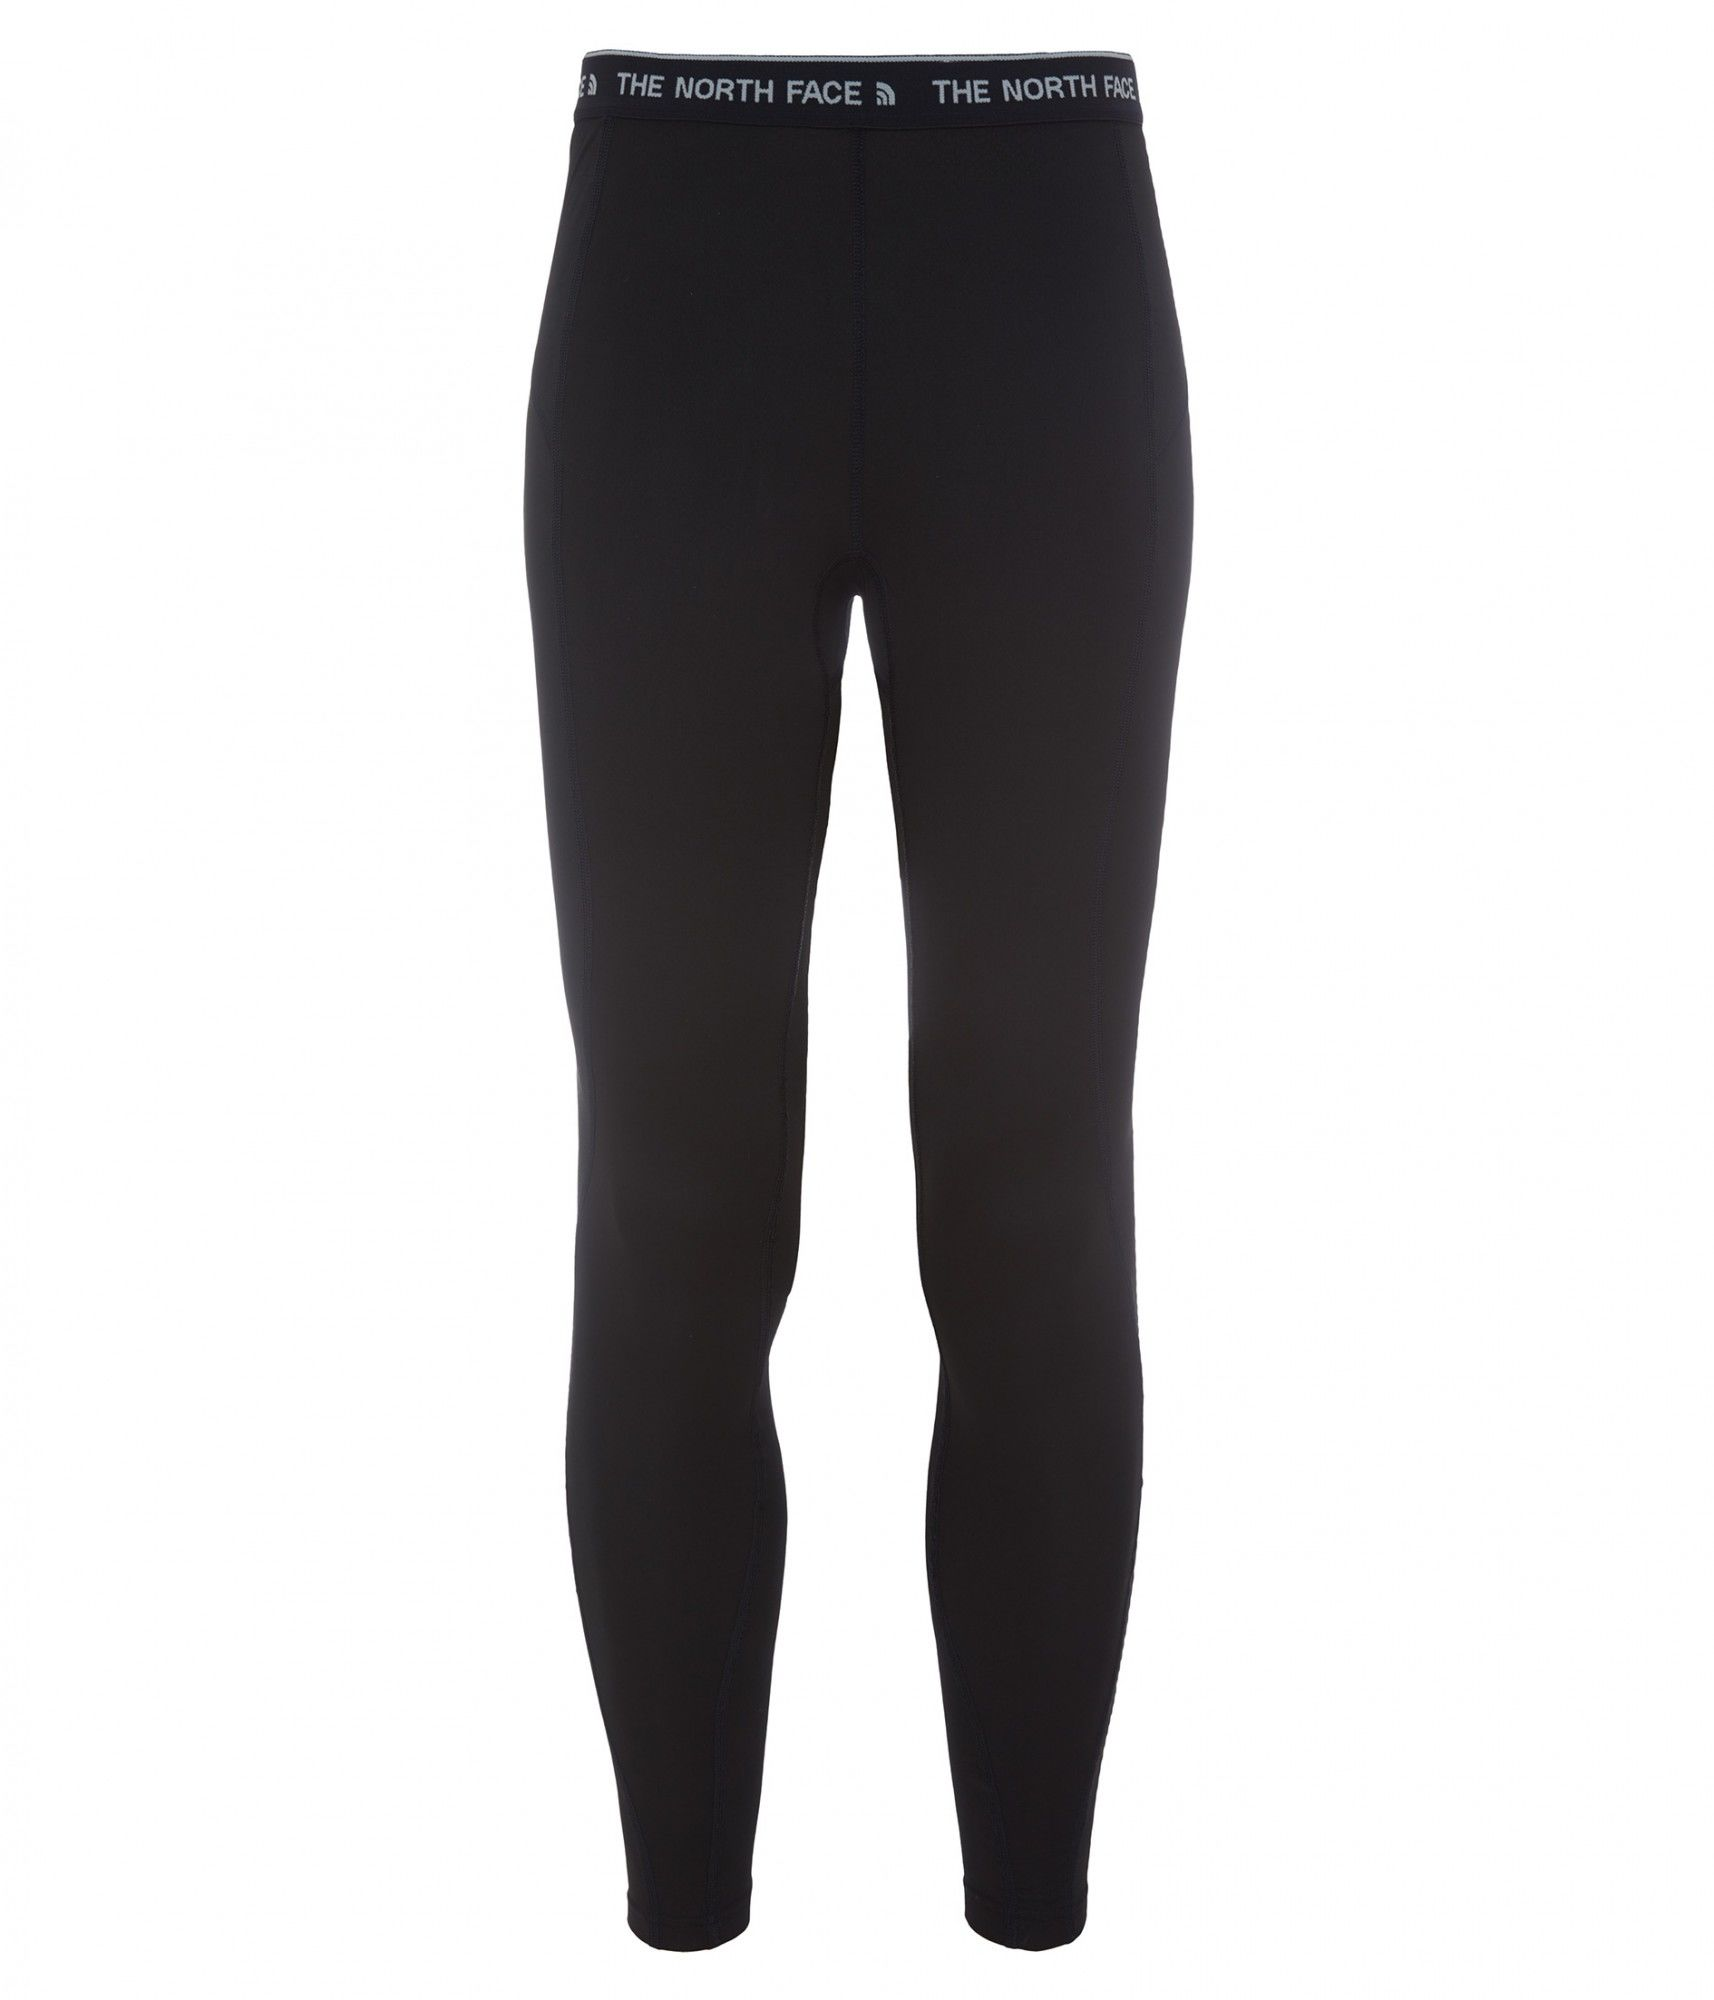 The North Face Warm Tights Schwarz, Female Tights, M